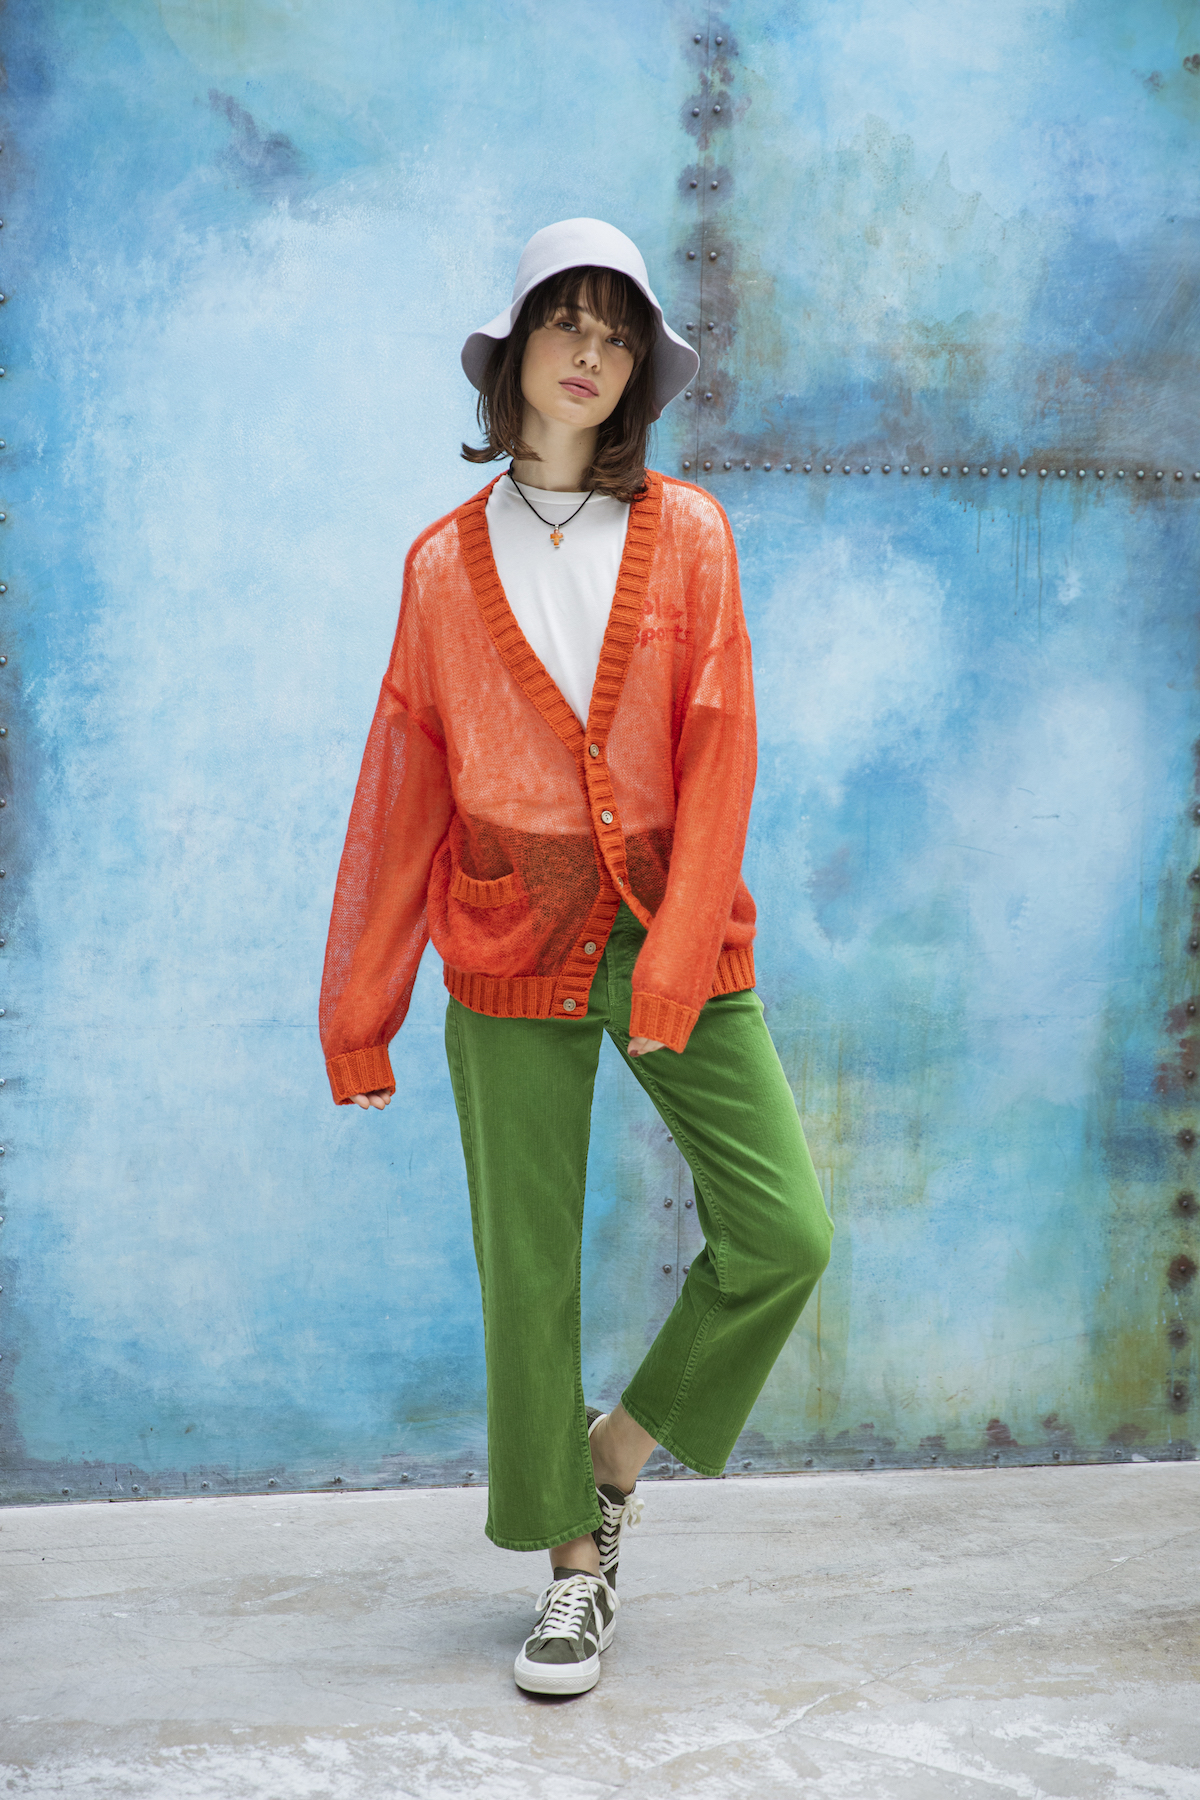 1_1 cardigan¥19,000 tee¥9,000 pants¥27,000 hat¥16,000 necklace¥37,000 shoes¥12,000